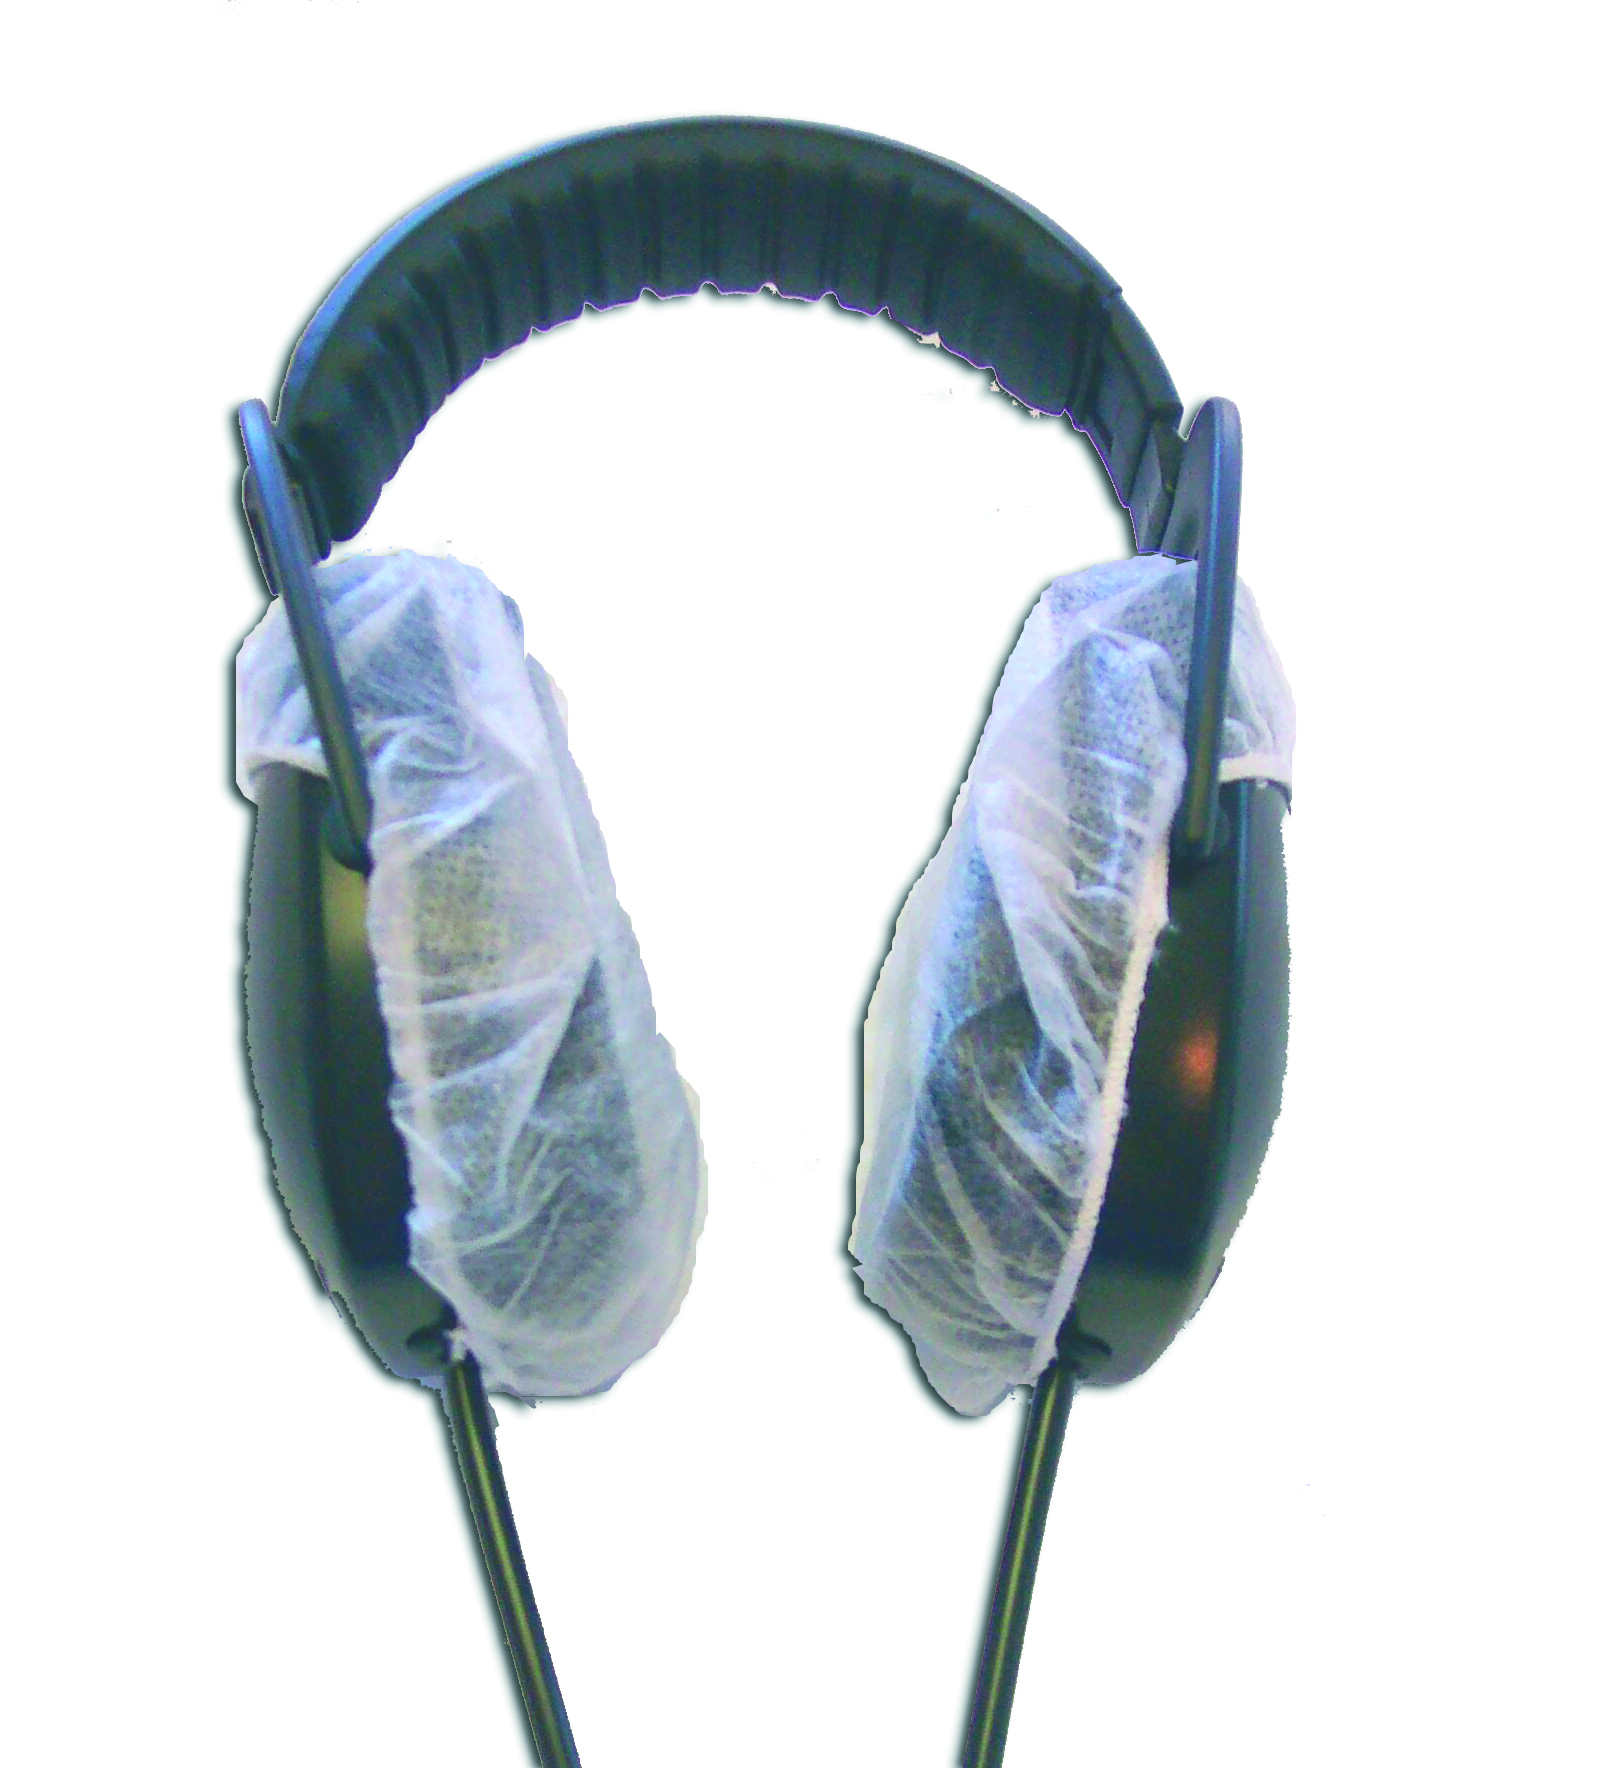 Newmatic Sanitary Covers for Headsets